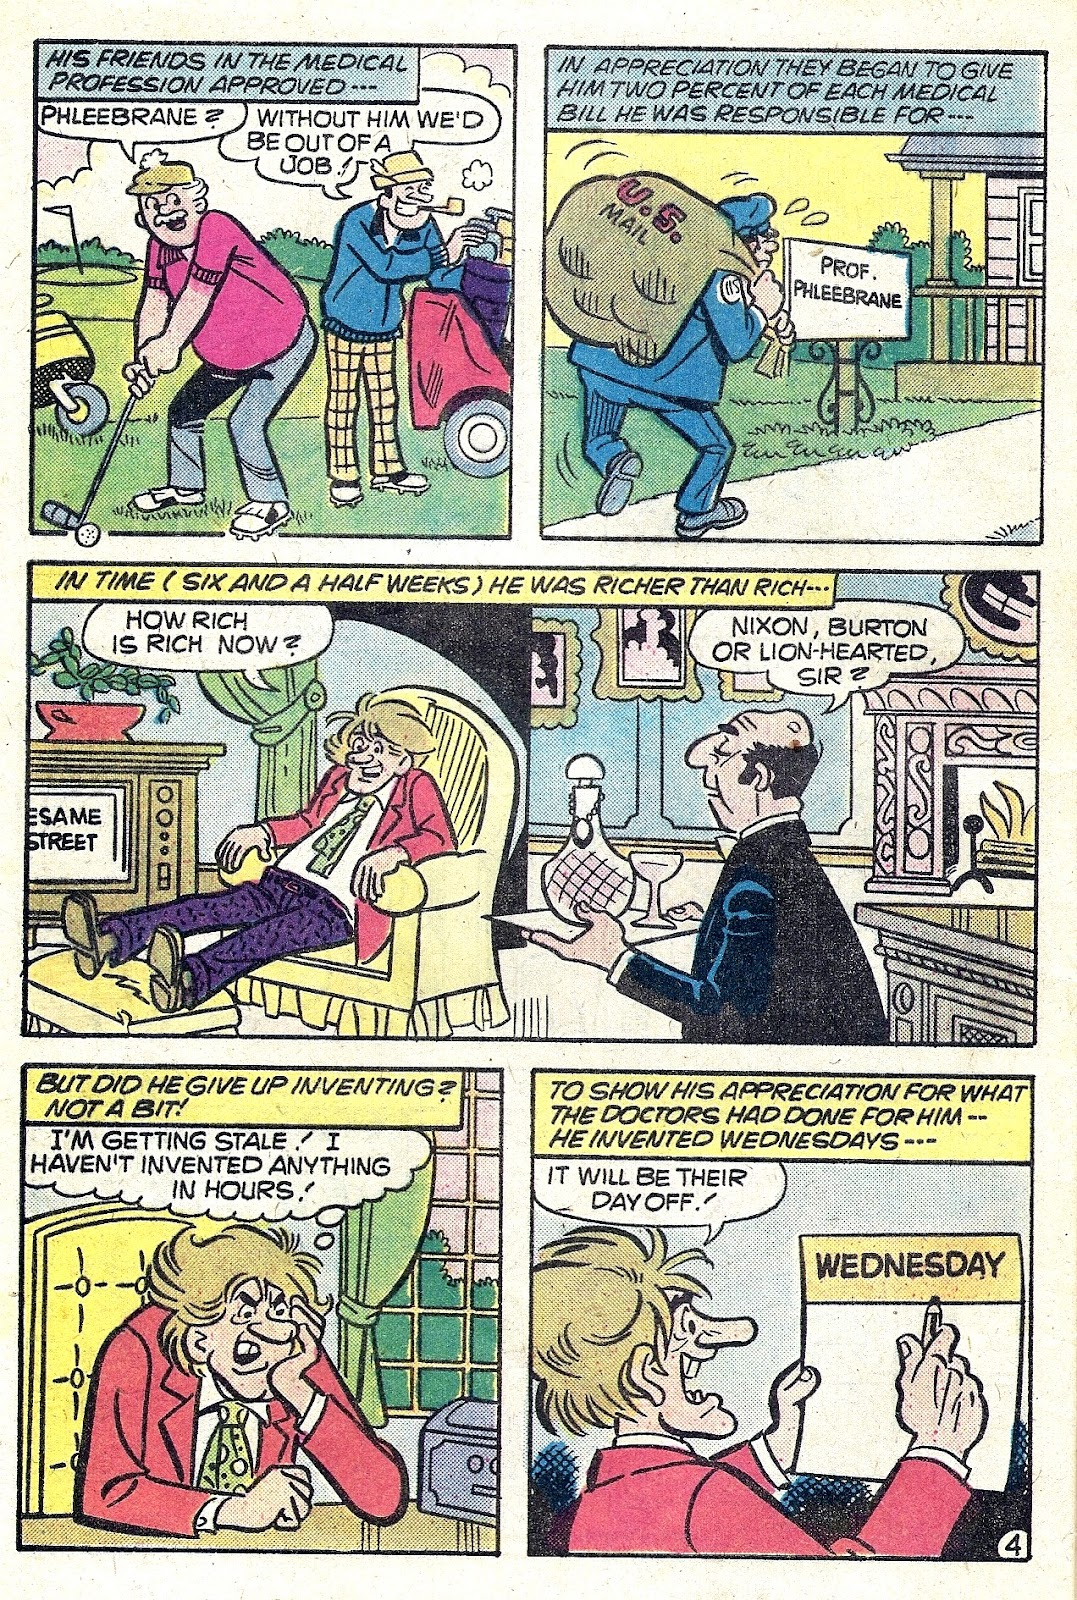 Read online Madhouse Comics comic -  Issue #114 - 32